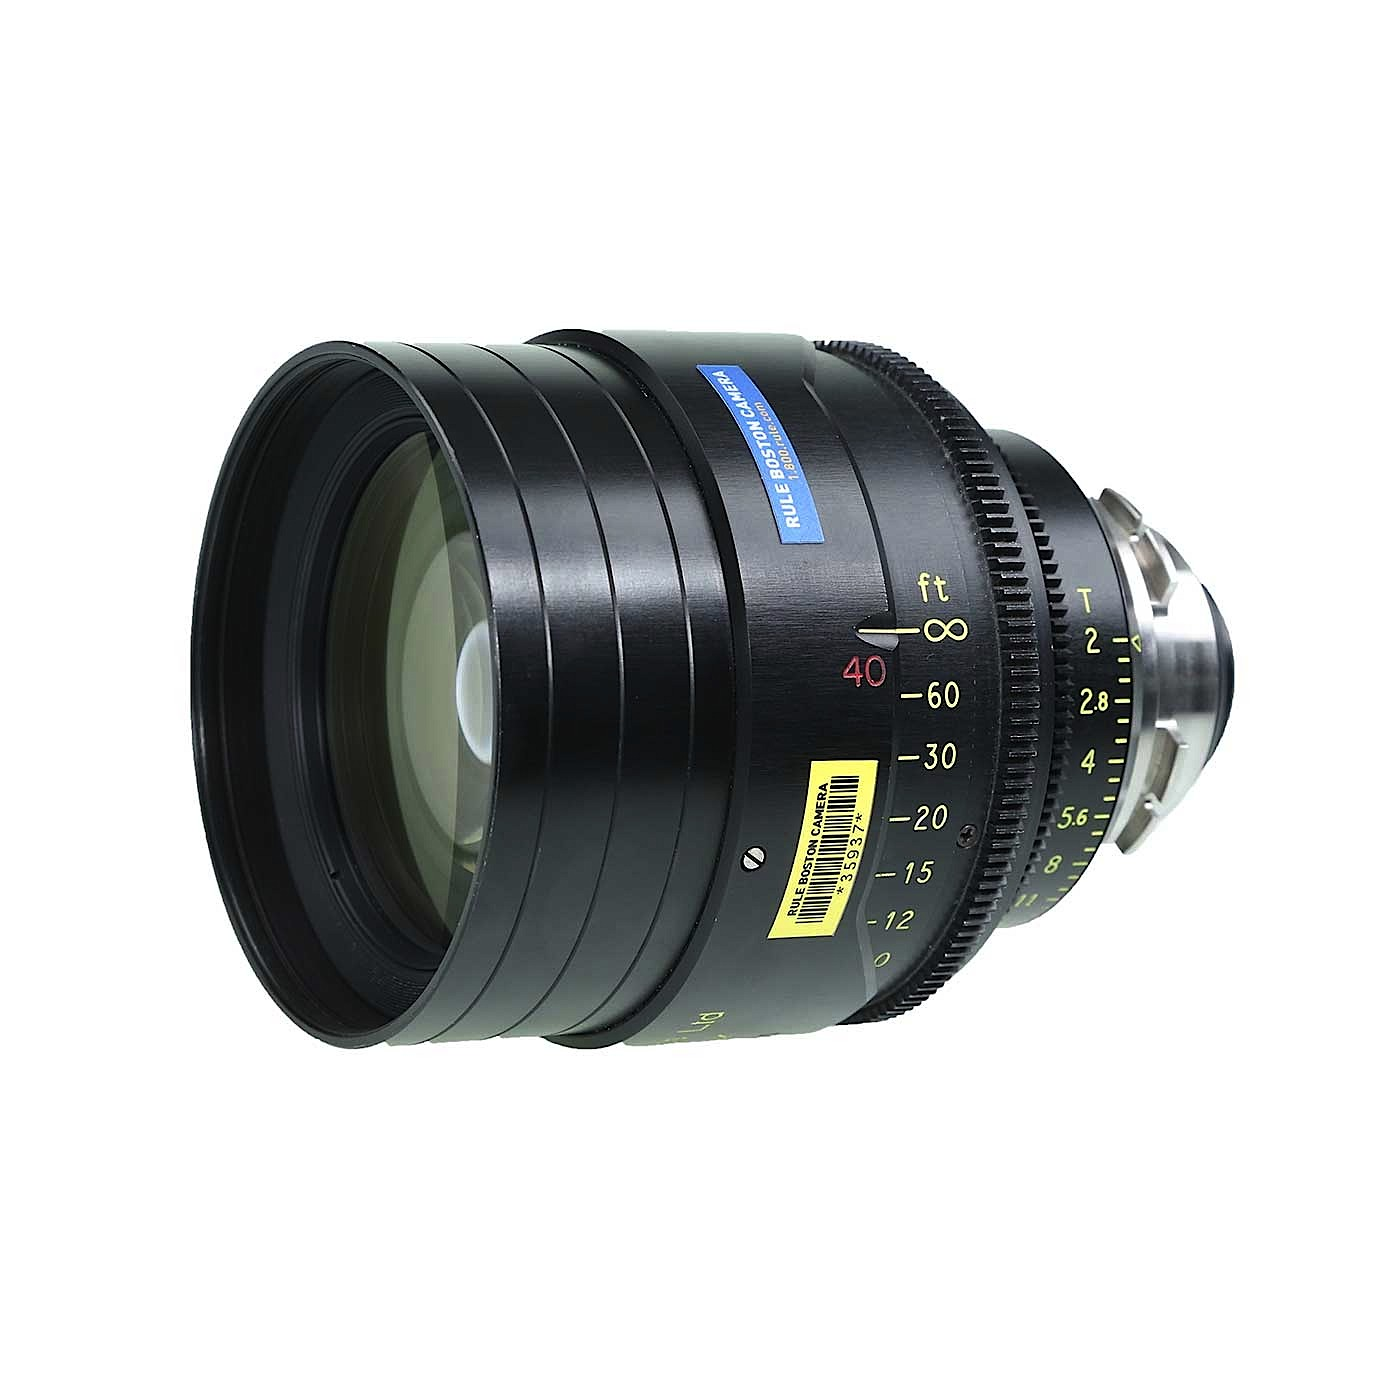 Cooke 40mm S4 PL Prime Lens